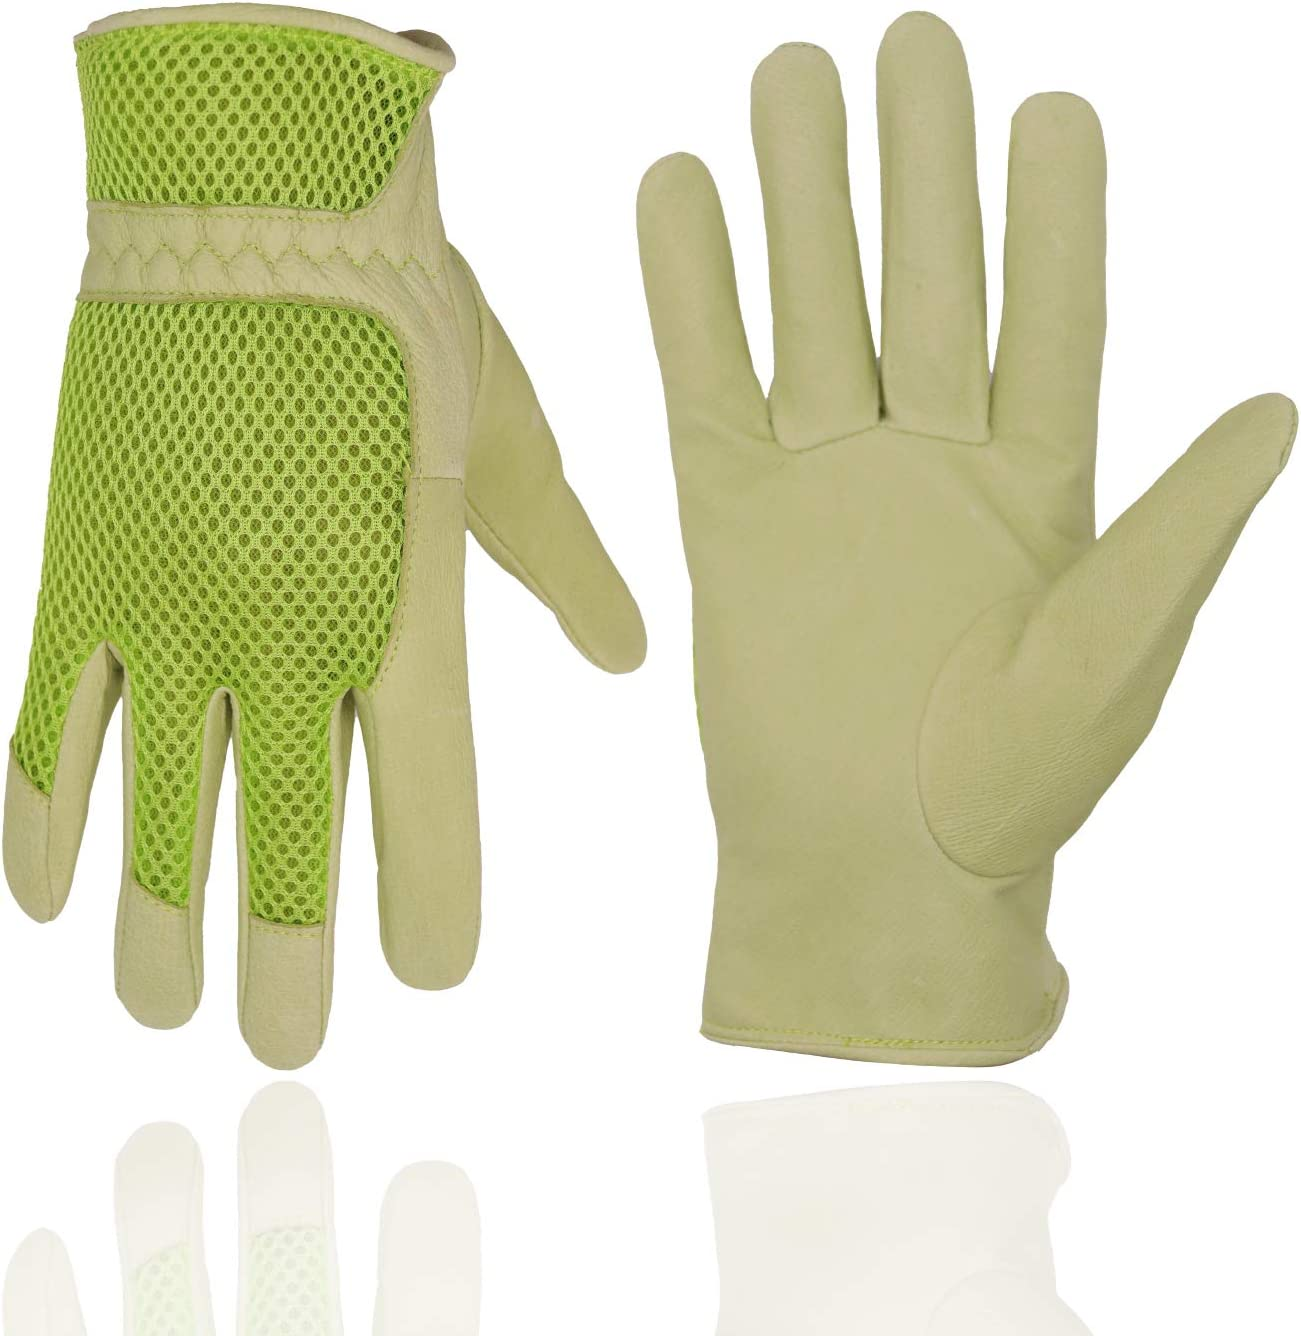 Pigskin Leather women Gardening Gloves,Stretchable Tough Working Glove,3D Mesh Comfort Fit,Comfort and Breathable Design for rose garden (Small, Green)